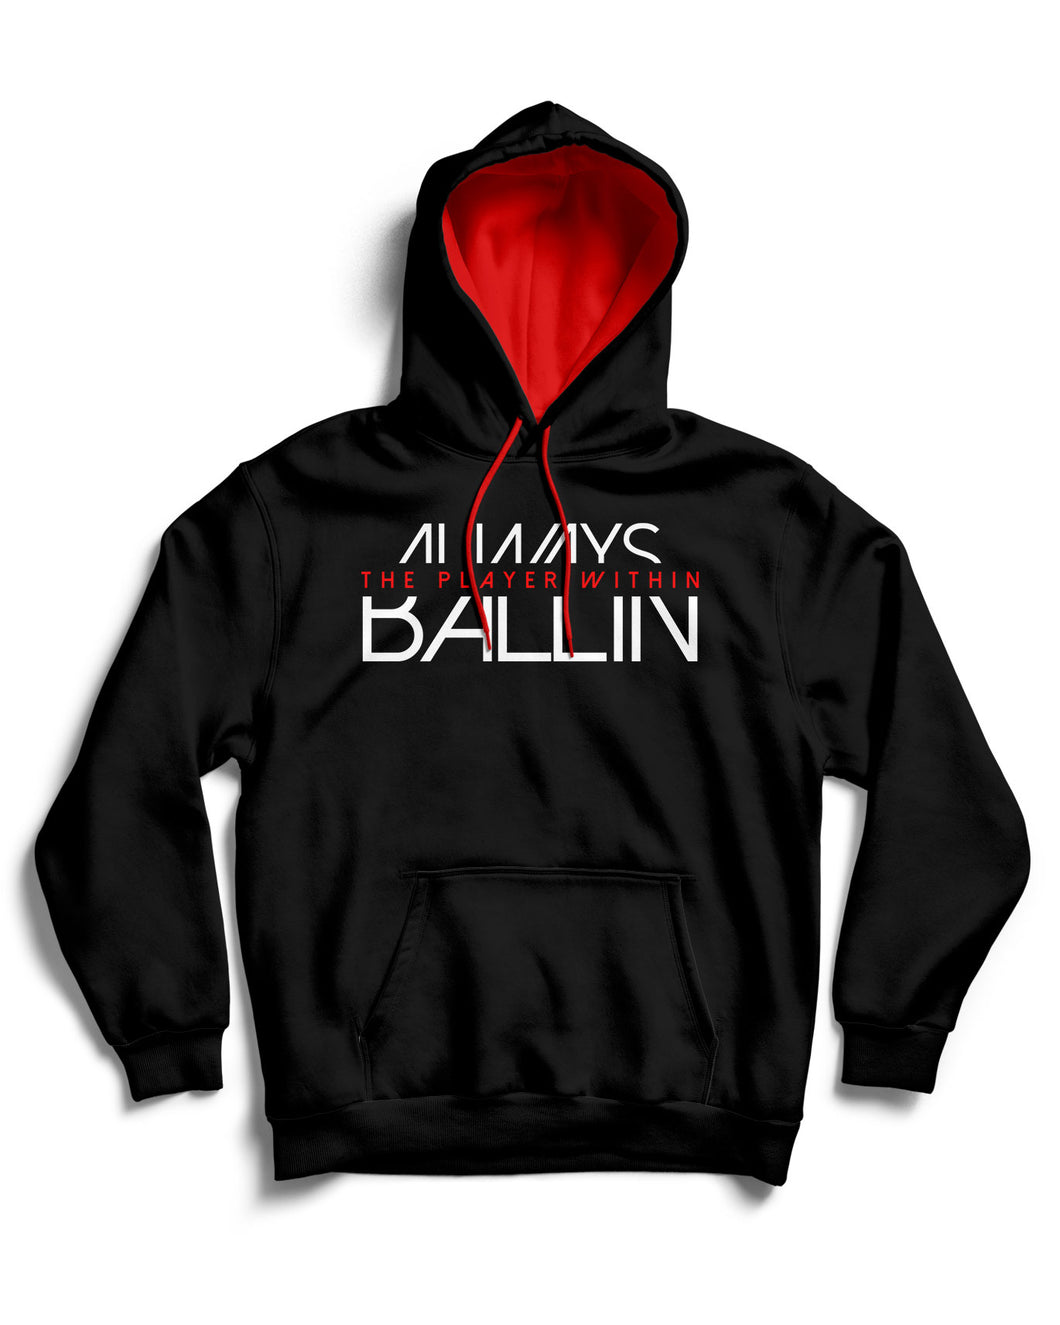 The Player Within Black Pullover Hoodie